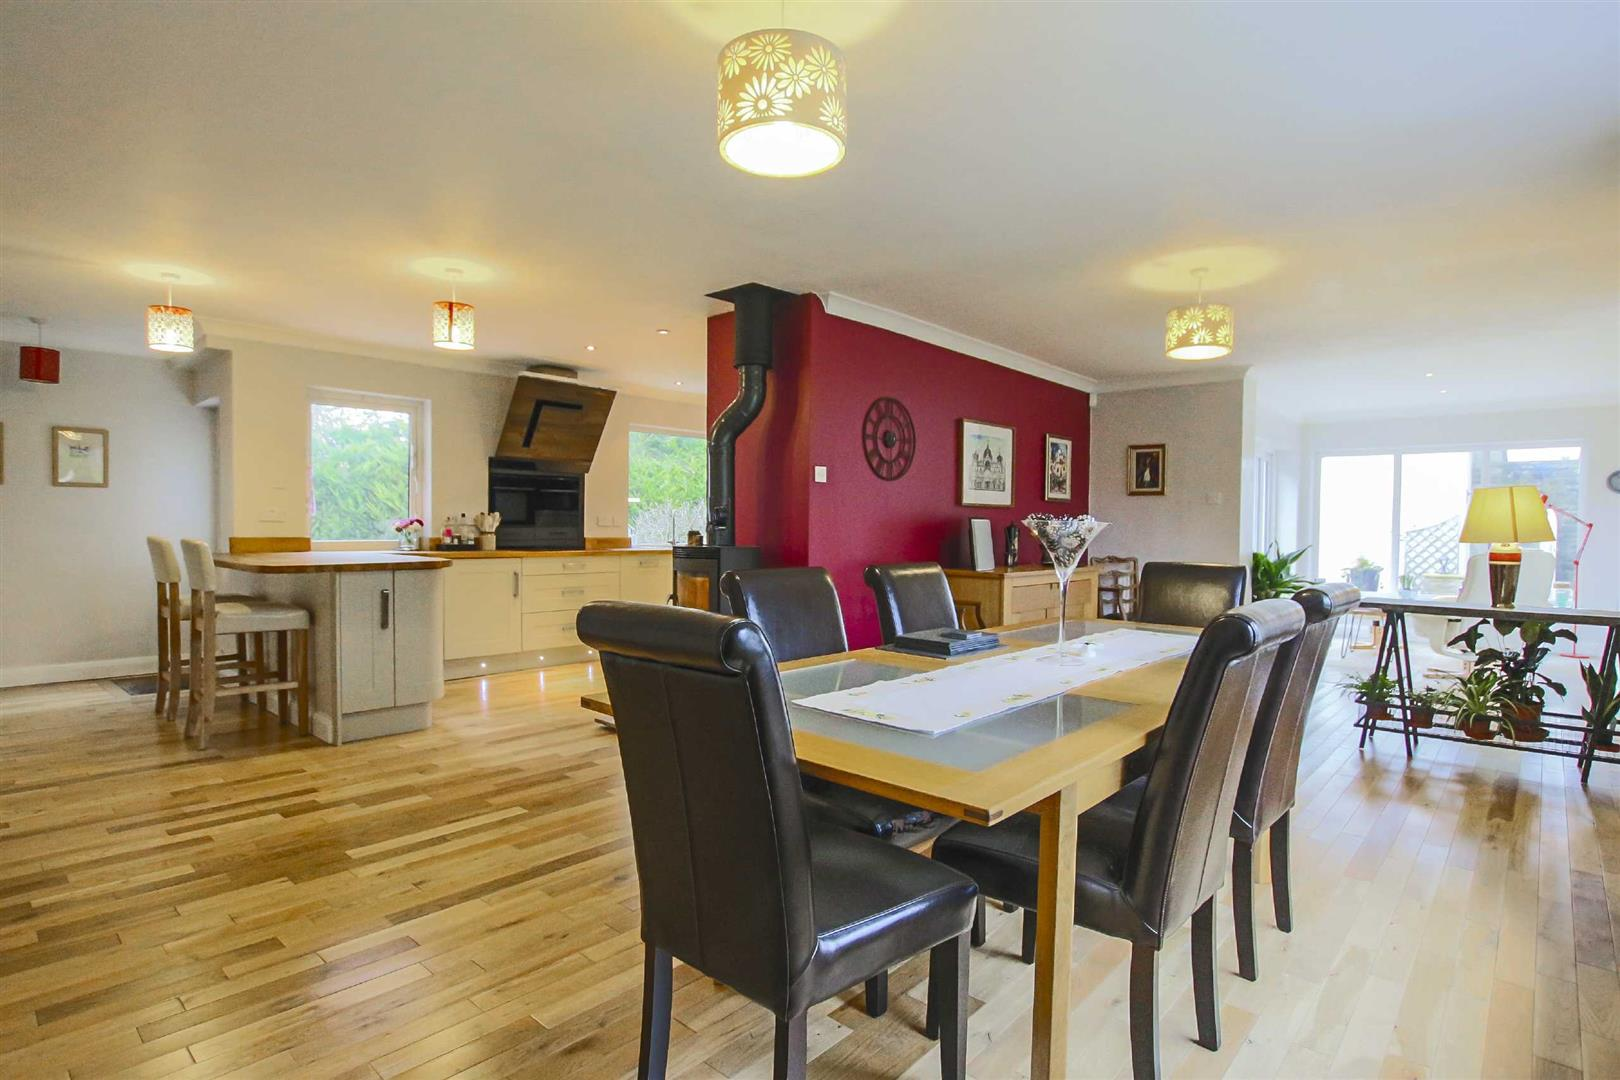 5 Bedroom Detached House For Sale - Image 6